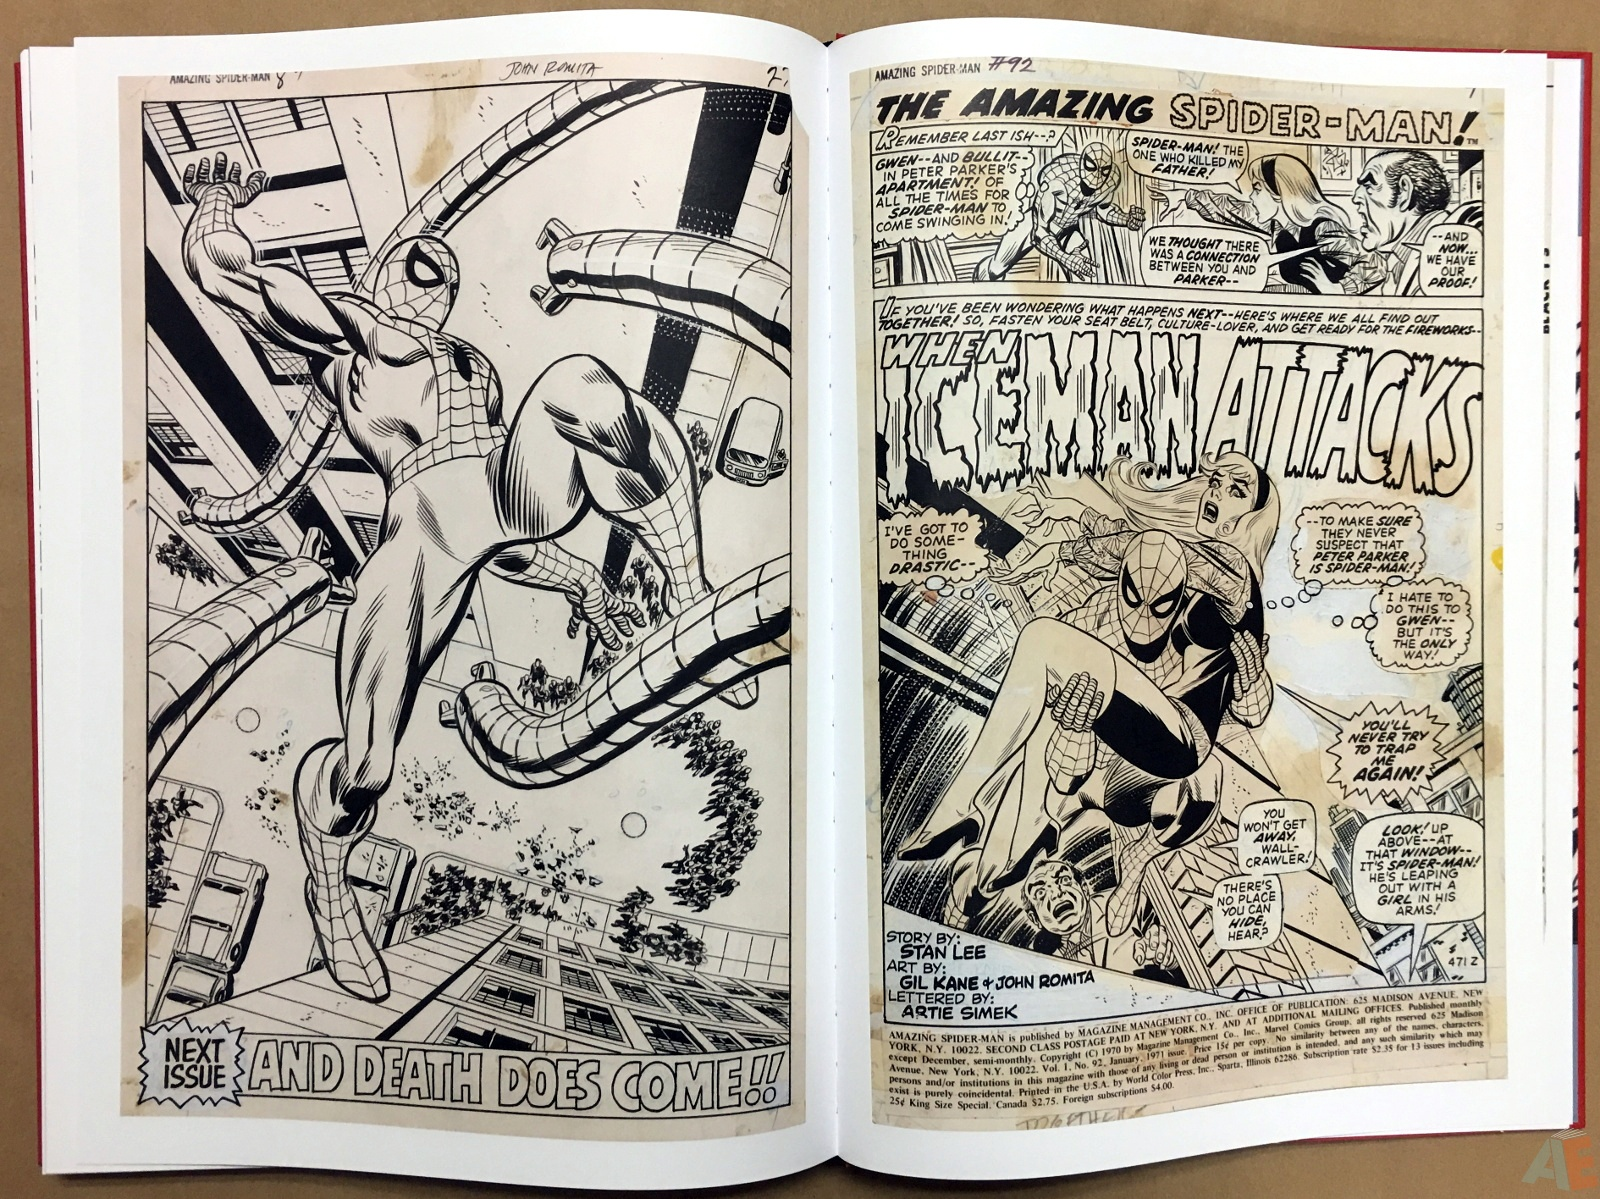 Gil Kane's The Amazing Spider-Man Artist's Edition 50